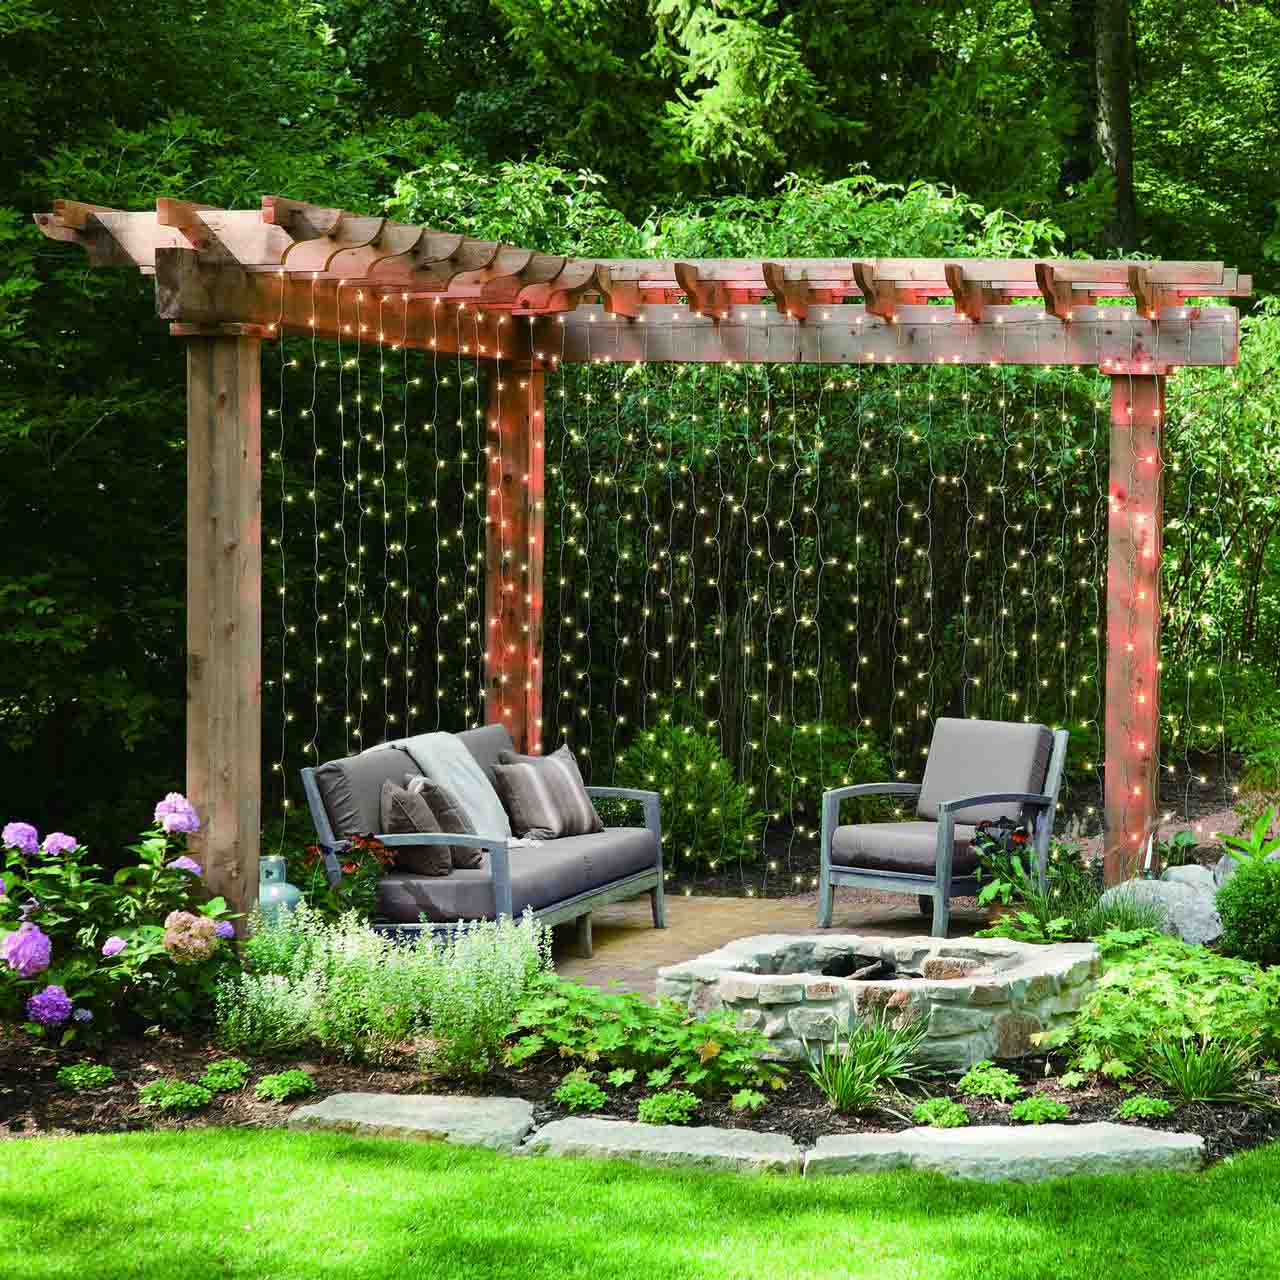 Amazing Outdoor Decor -- Affordable Wall of Curtain Twinkle Lights